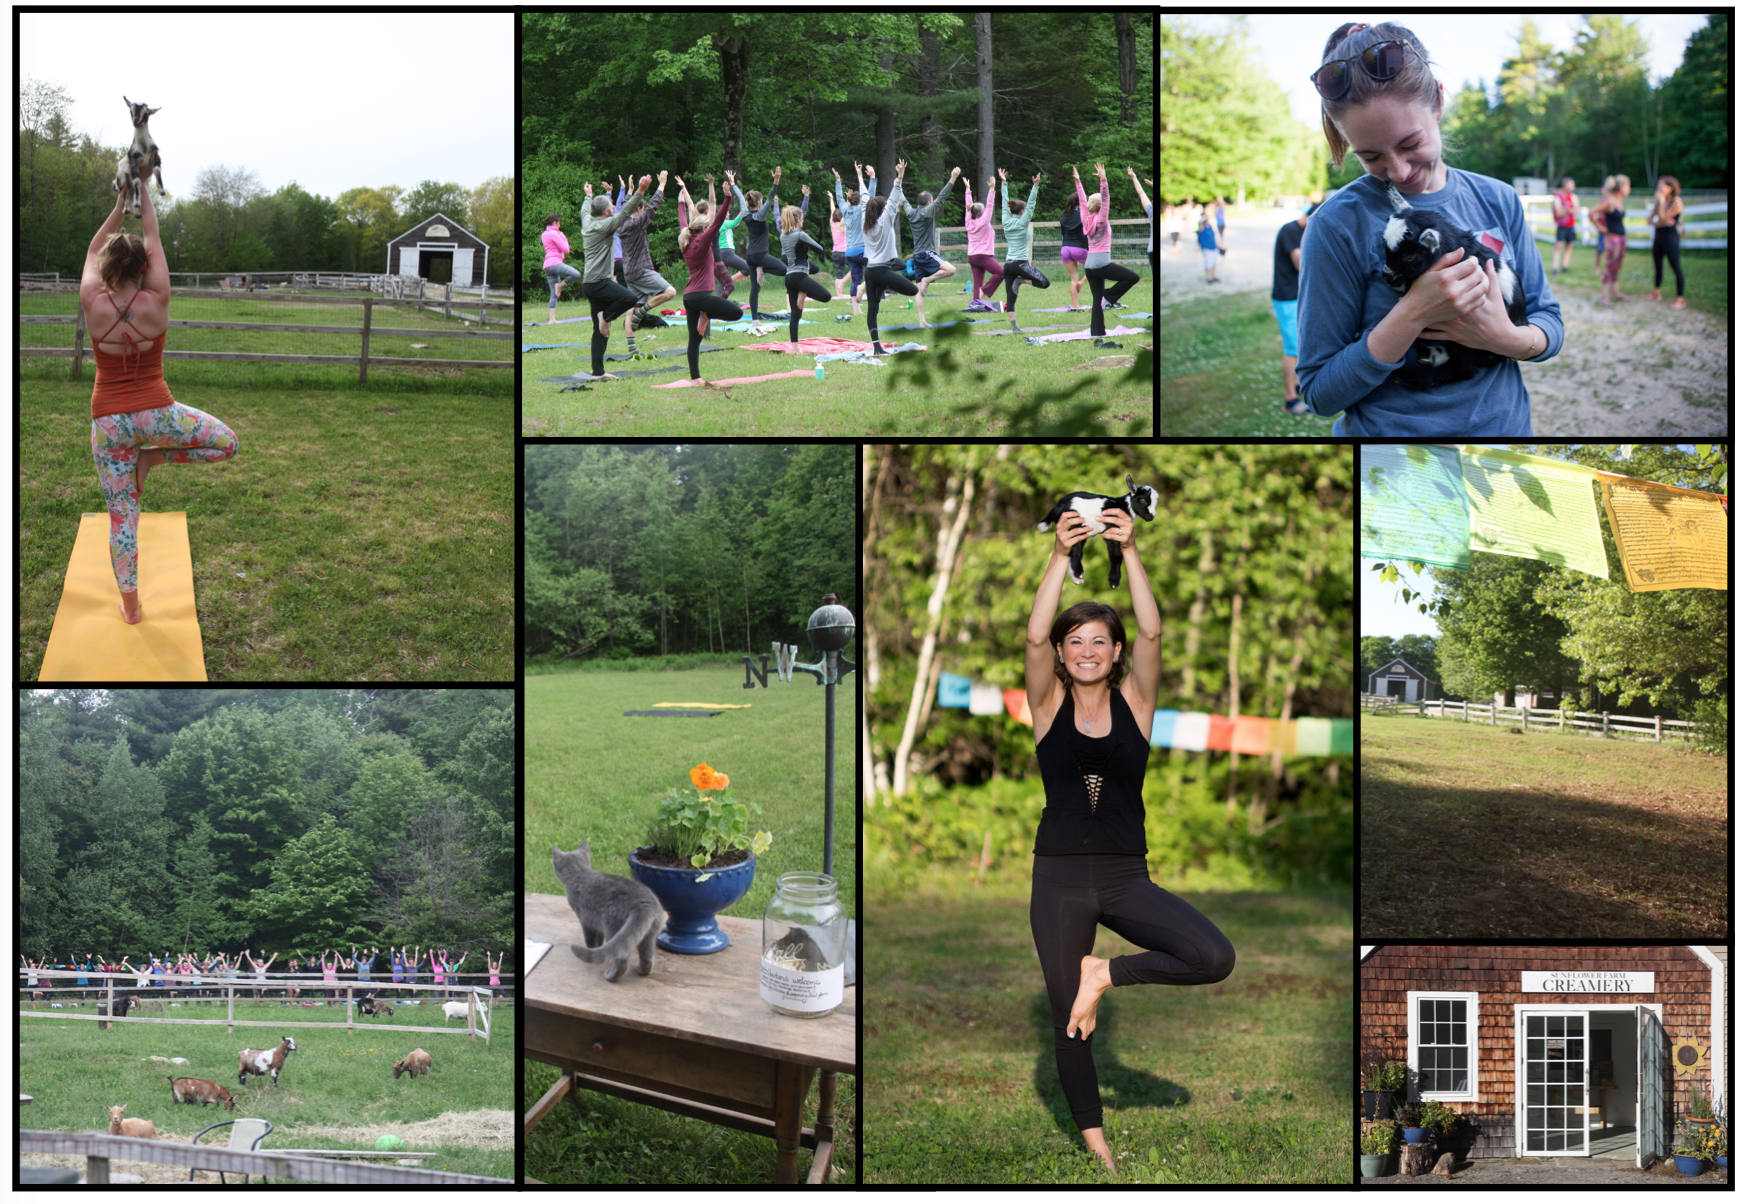 HOPE TO SEE YOU for DONATION ALL-LEVELS yoga in the field!     FACEBOOK SIGN UP HERE!    Thursdays 5:30-6:30PM June, July & August. And Saturdays 9:30-10:30AM. Do yoga right next to the goat pasture then get to know them after class. All classes are donation, all level classes and end with goat snuggles. Note there are way more babies in June (50ish!) and usually only a few kids left by August.  No need to register ahead, just come on by. If you can pull all the way in behind the barn, that will help us keep parked cars off the road. And... since the self serve fridge is open Fri-Sun, people who attend yoga get early dibs on all the weekends treats! Hope to see you all back again this summer and to meet many new folks as well!